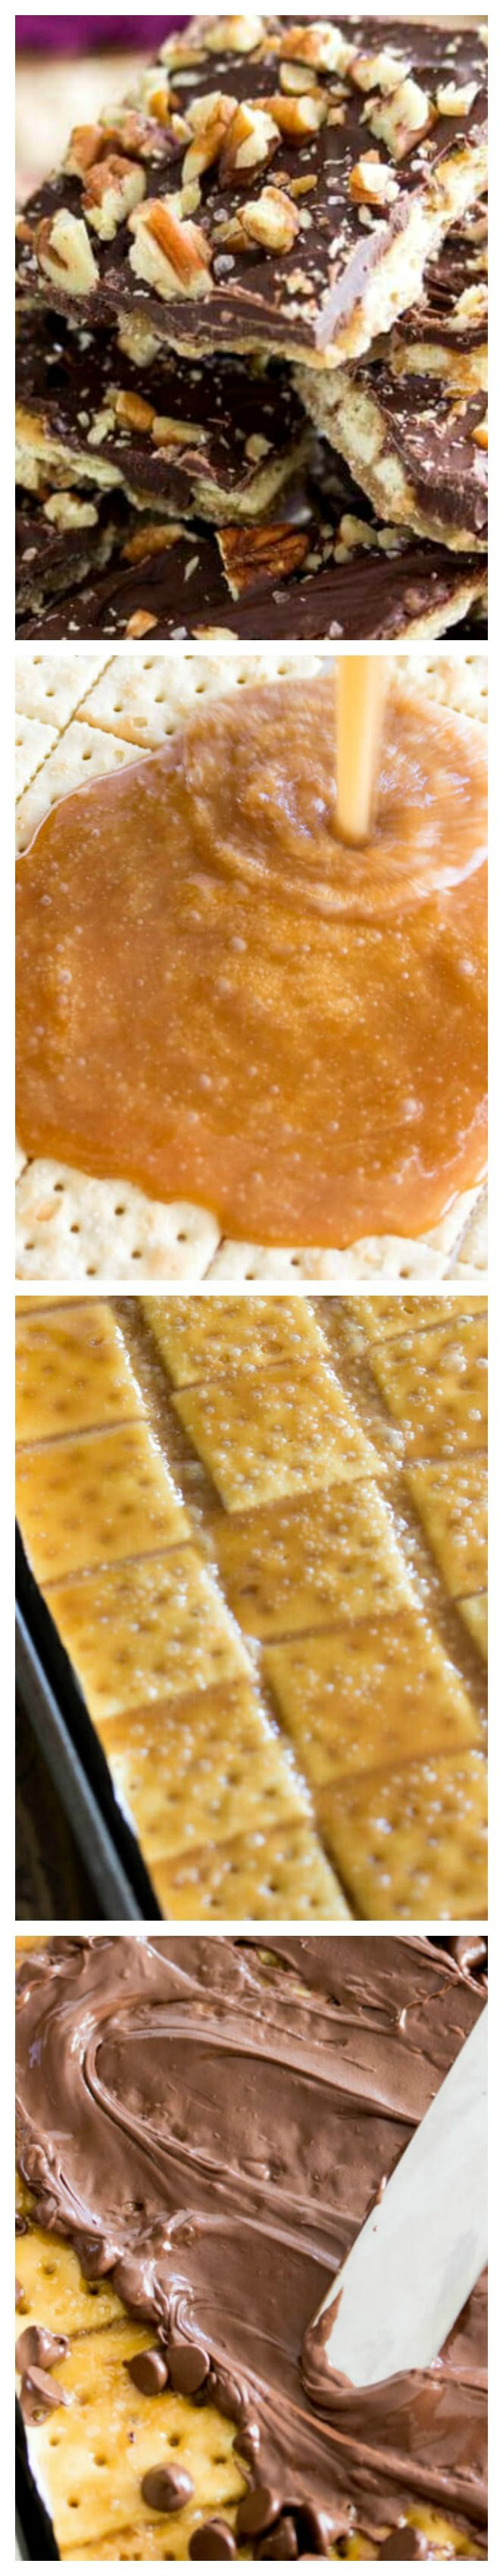 Saltine Cracker Candy ~ With just 5 simple ingredients and under 15 minutes to prepare, this saltine cracker candy (saltine toffee) is one of the simplest, quickest candies to make